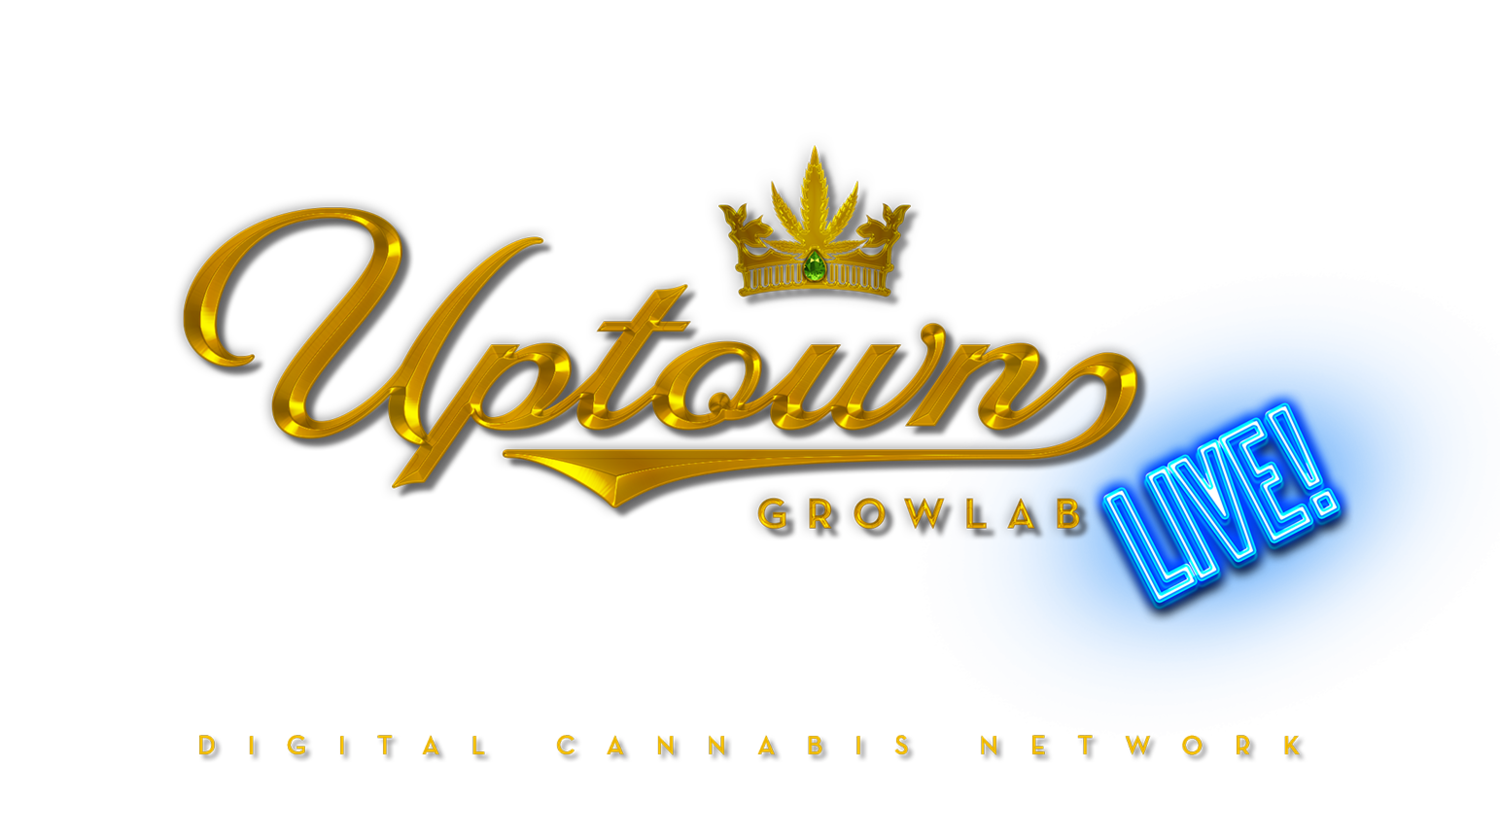 Uptown Growlab Live - Digital Cannabis Network and Streaming Show How To Cannabis Videos